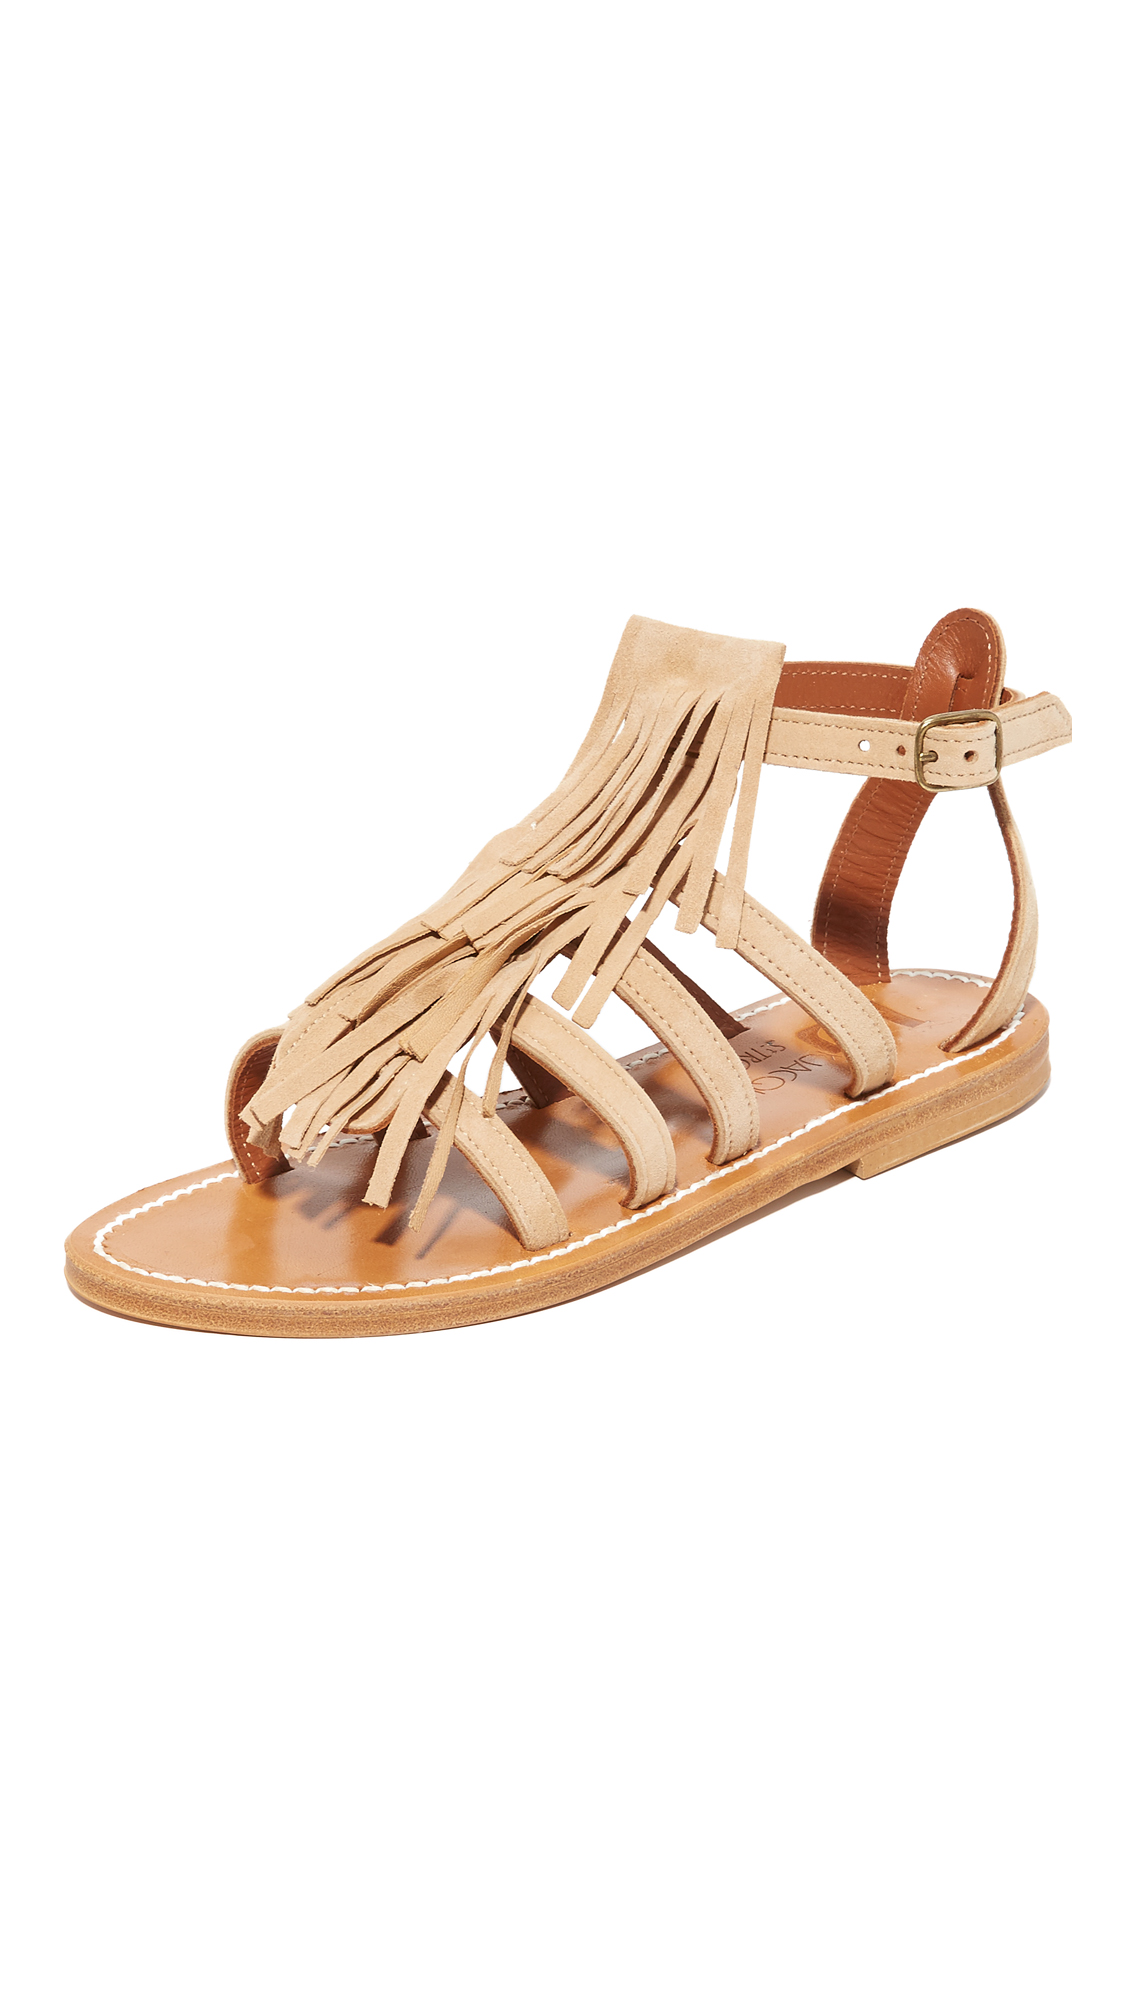 K. Jacques Fregate Fringe Sandals - Velours Sultan